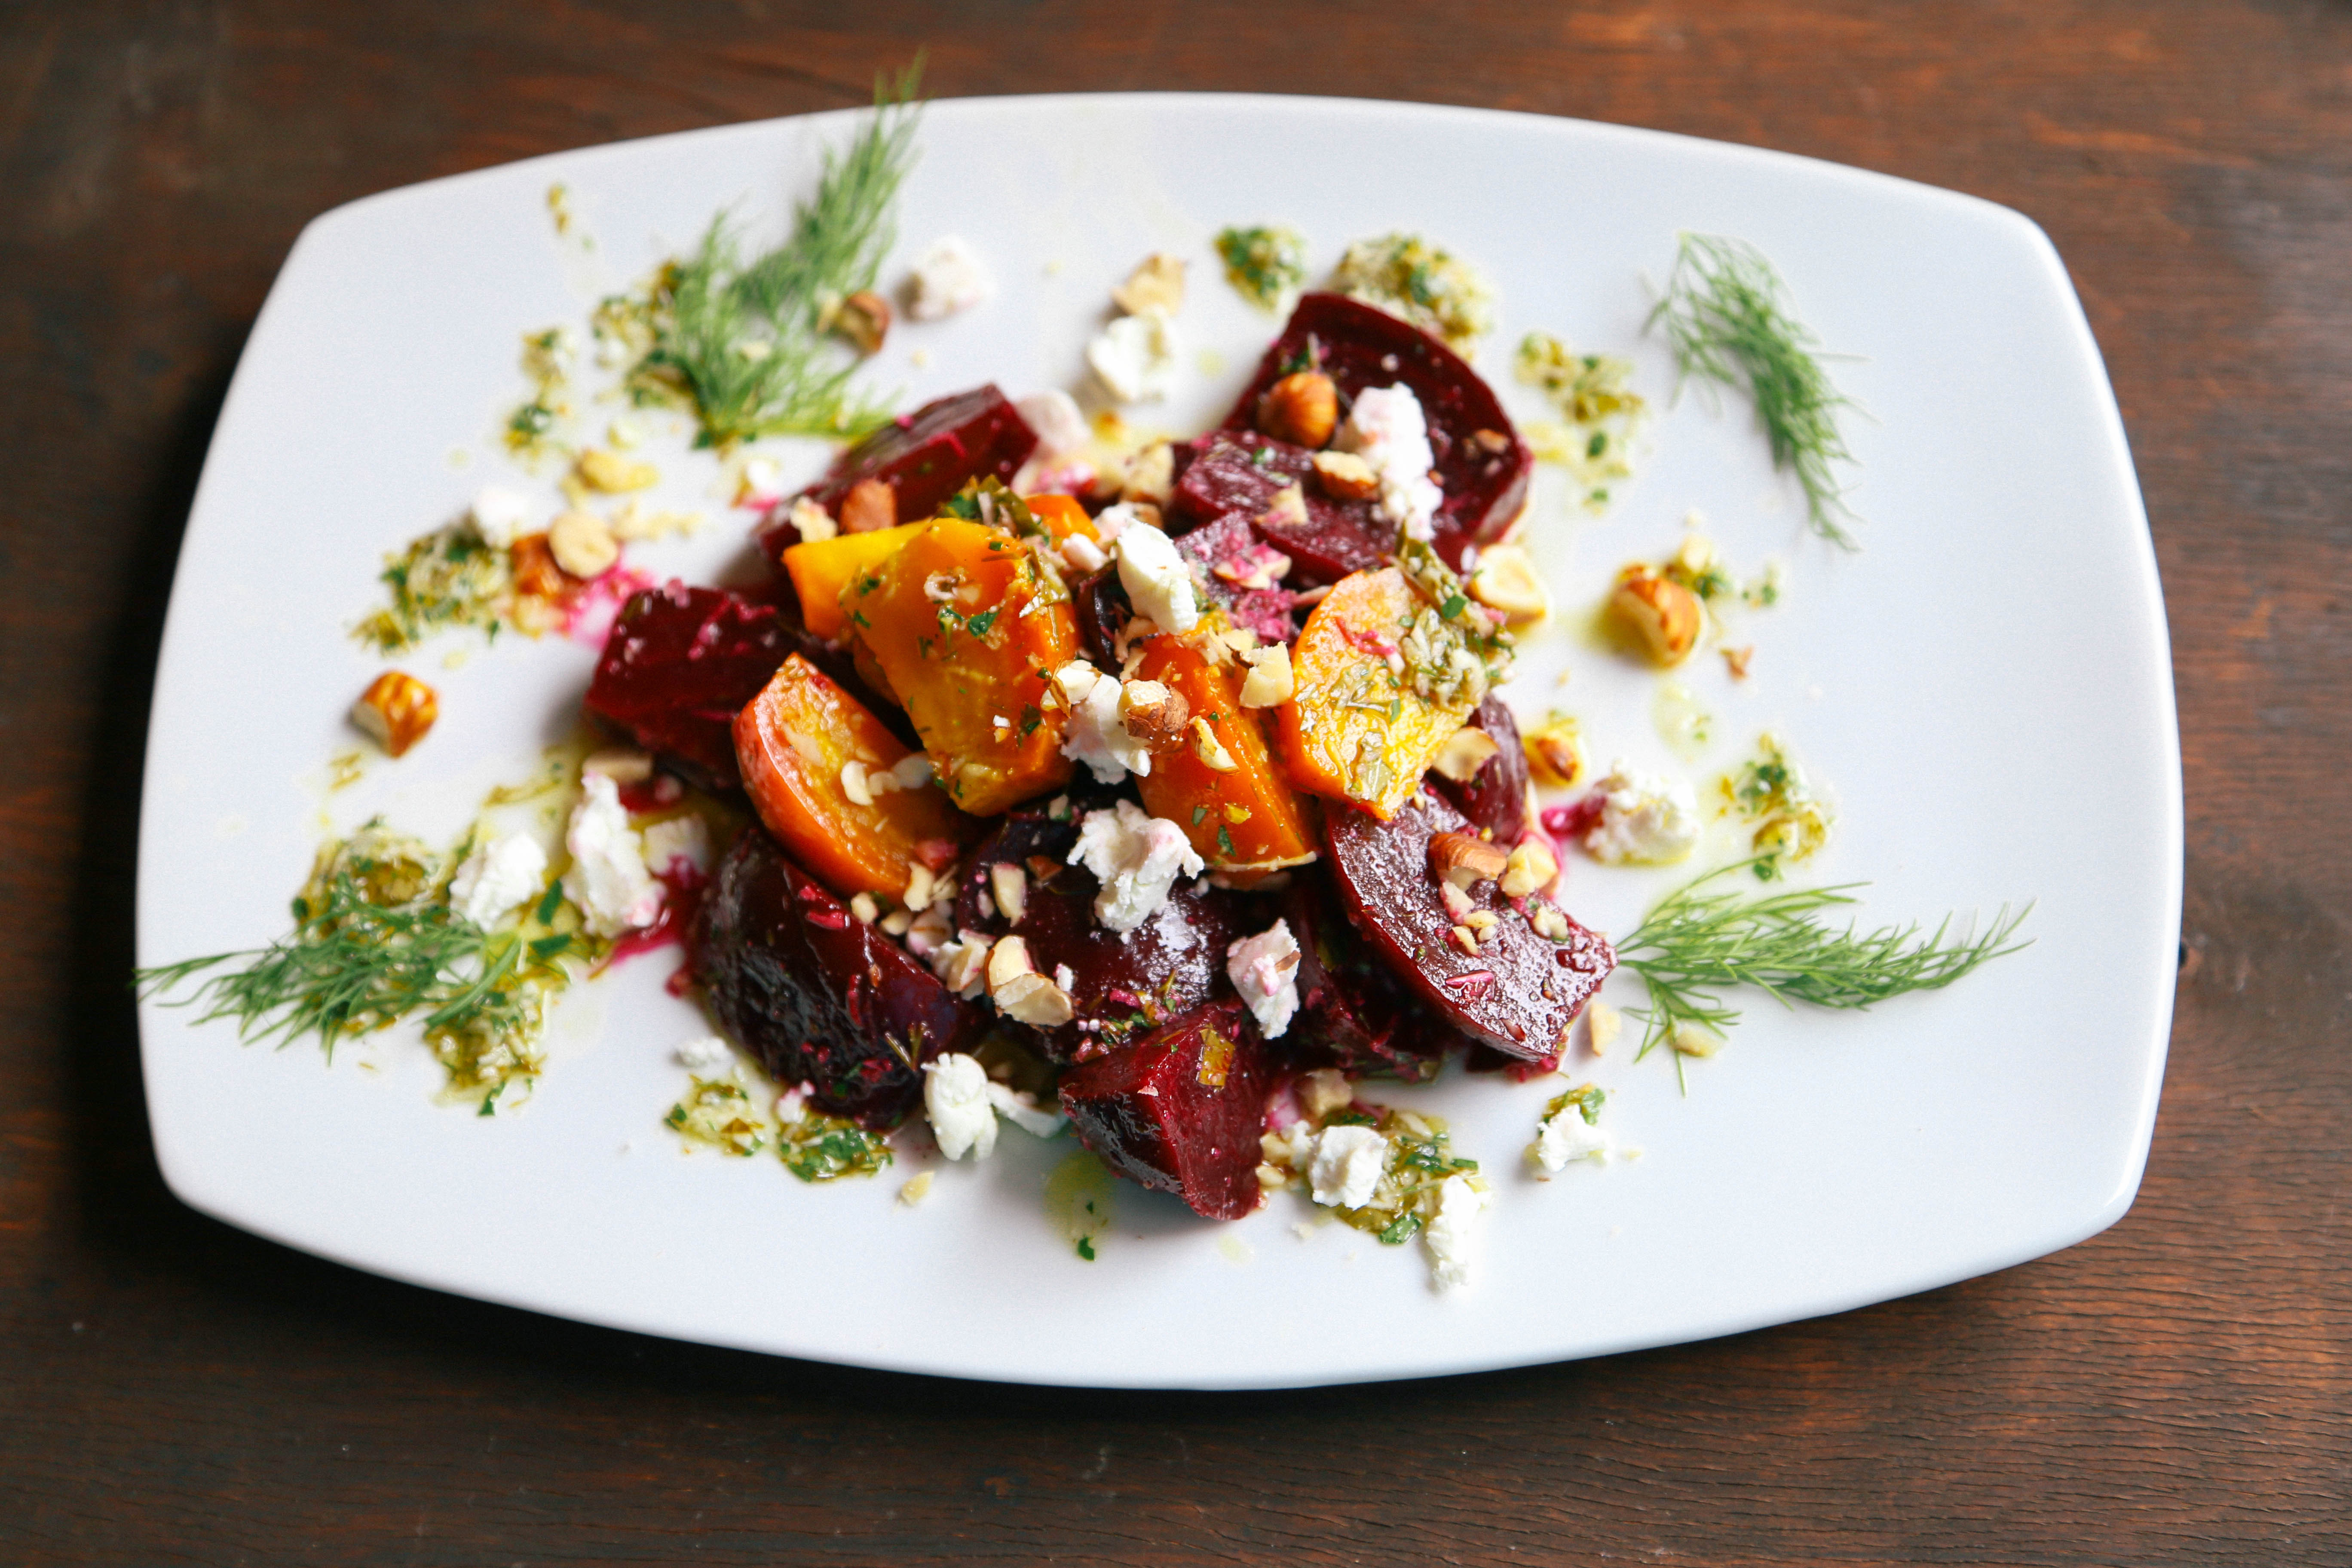 beet salad with beetroot salad with dill and beet salad with walnuts ...